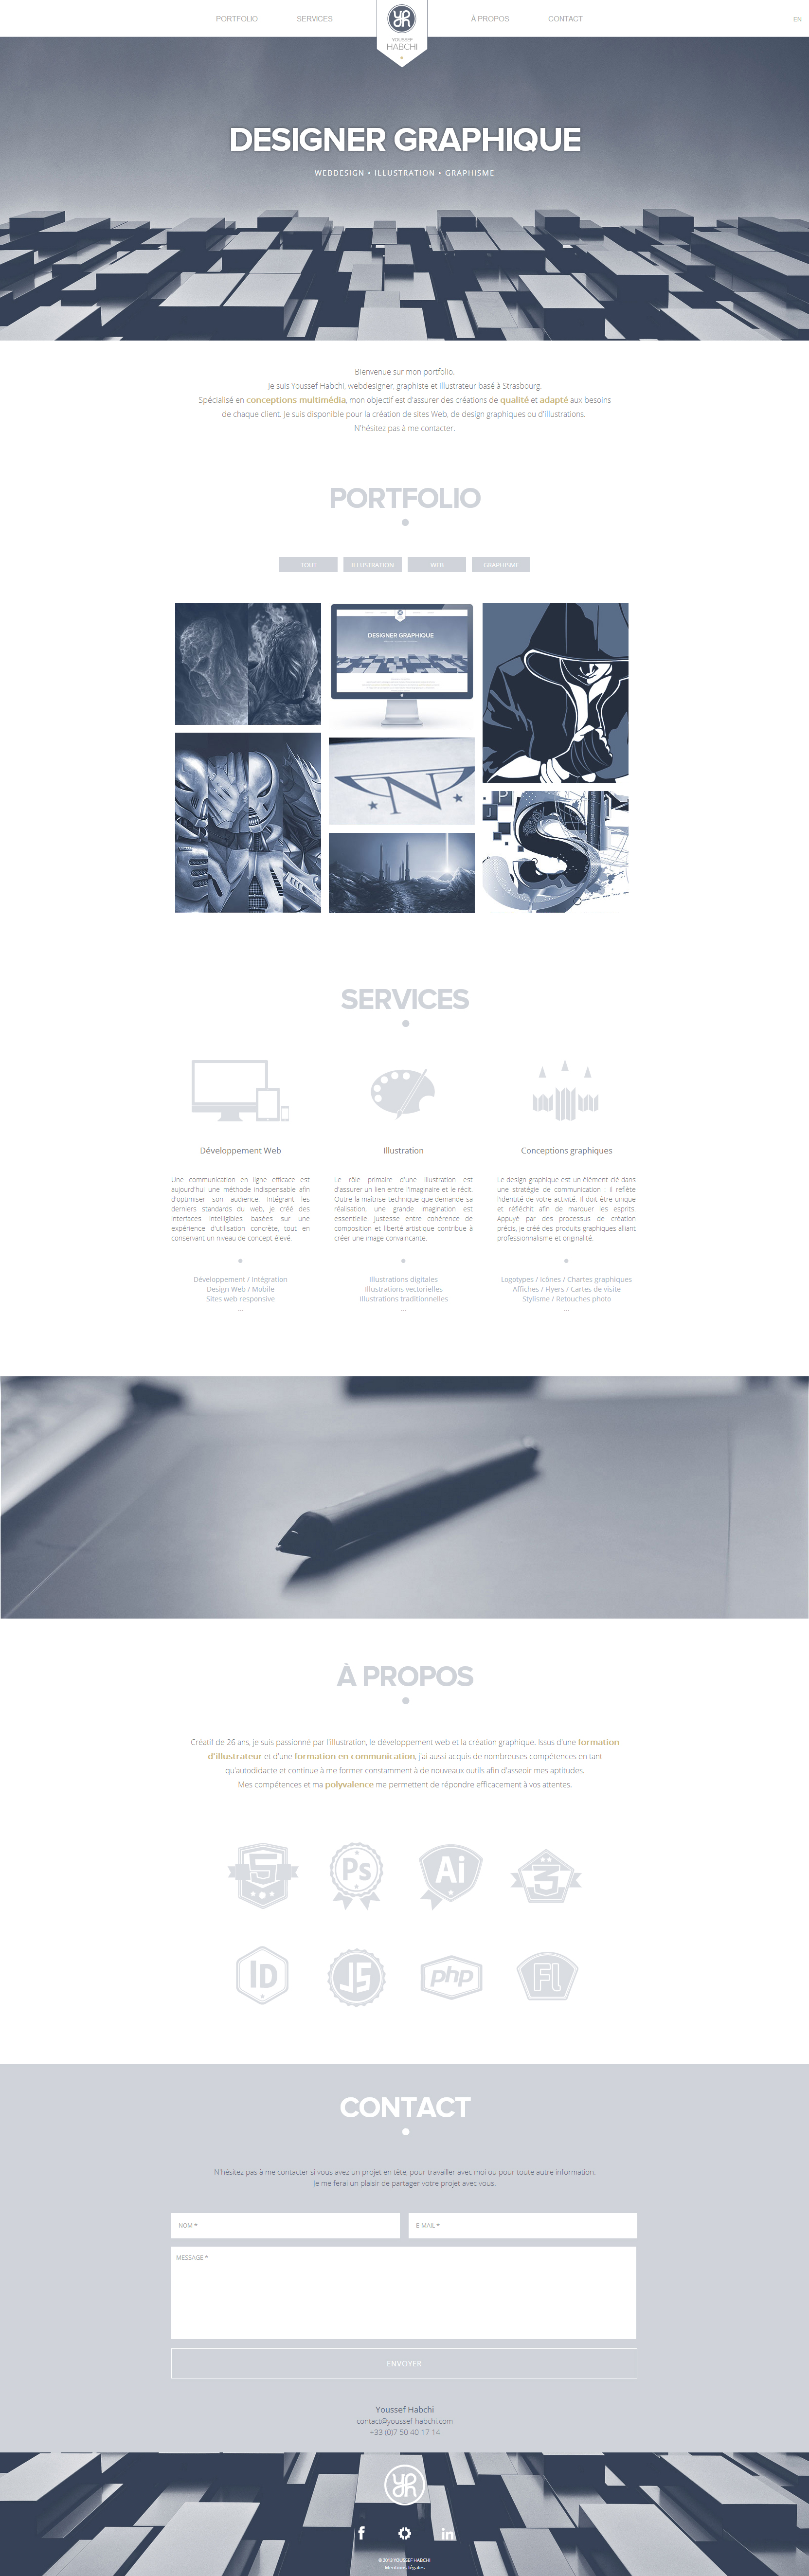 Youssef Habchi One Page Responsive Website